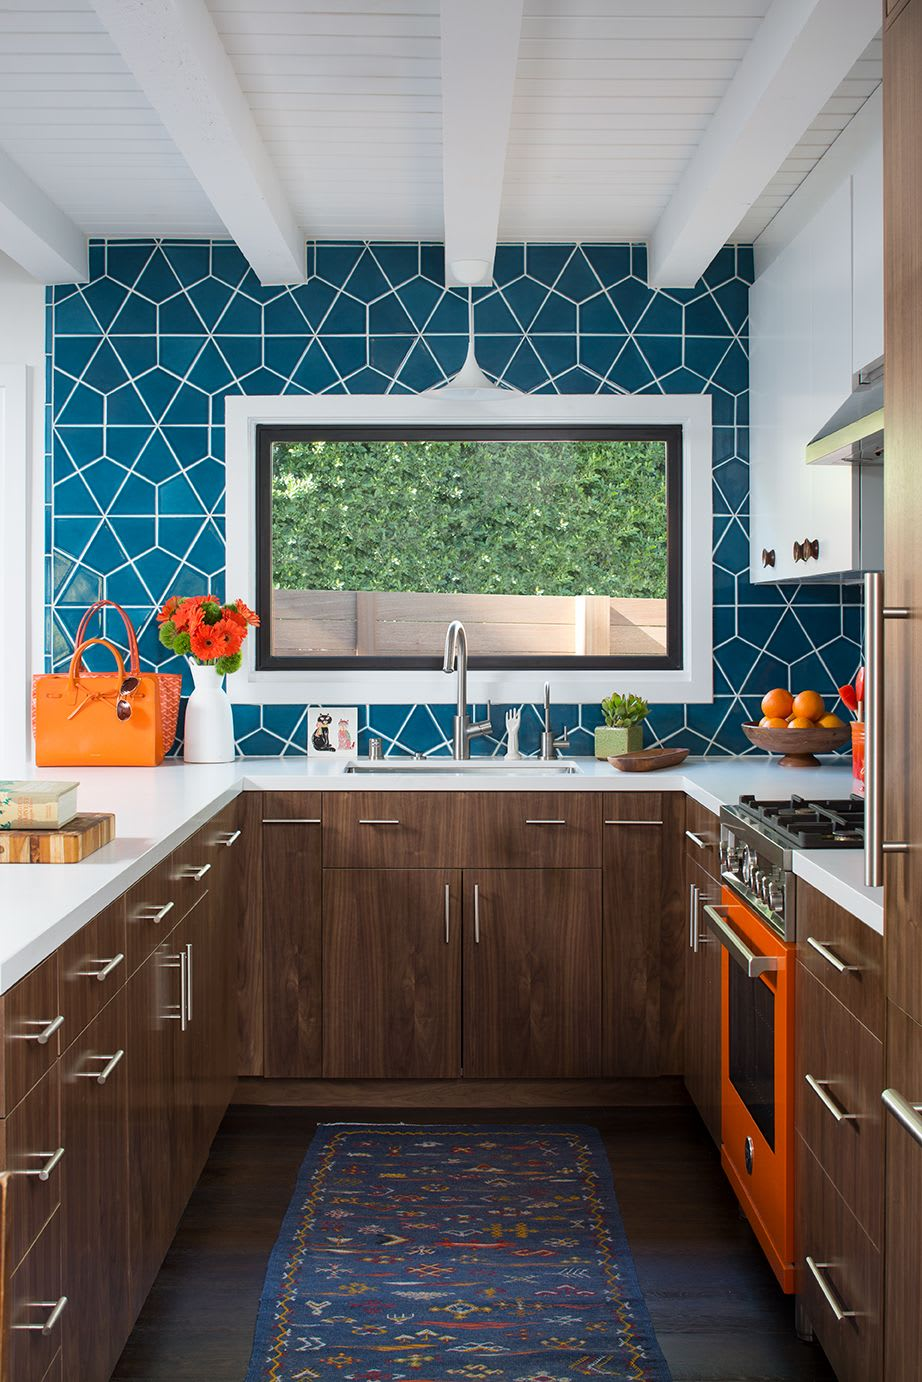 Interior Design by Kelly Martin Interiors seen at Private Residence, Los Angeles - Midcentury Remodel